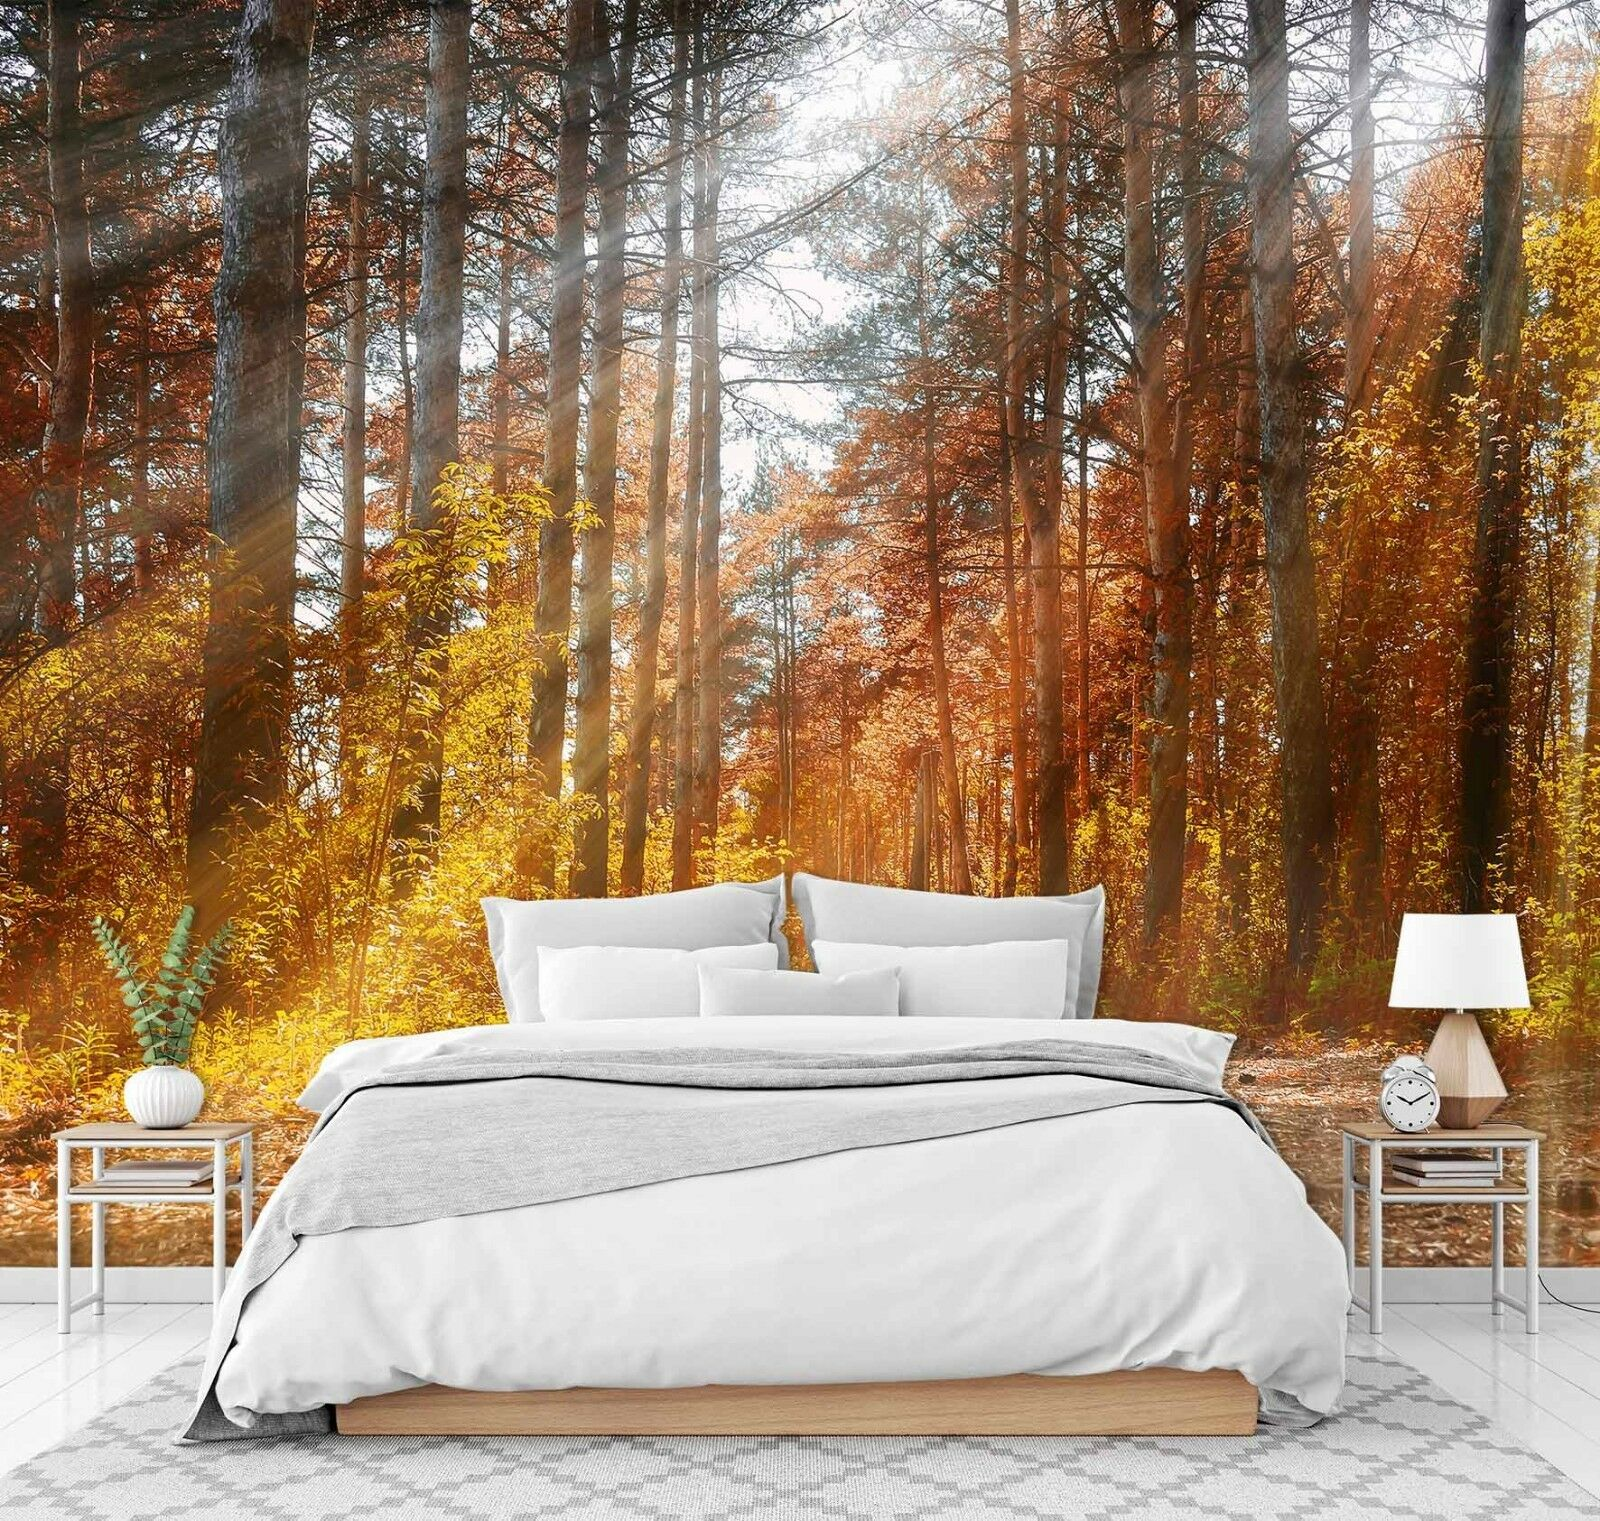 3D Forest Tree 76 Wall Paper Print Wall Decal Deco Indoor Wall Murals US Summer